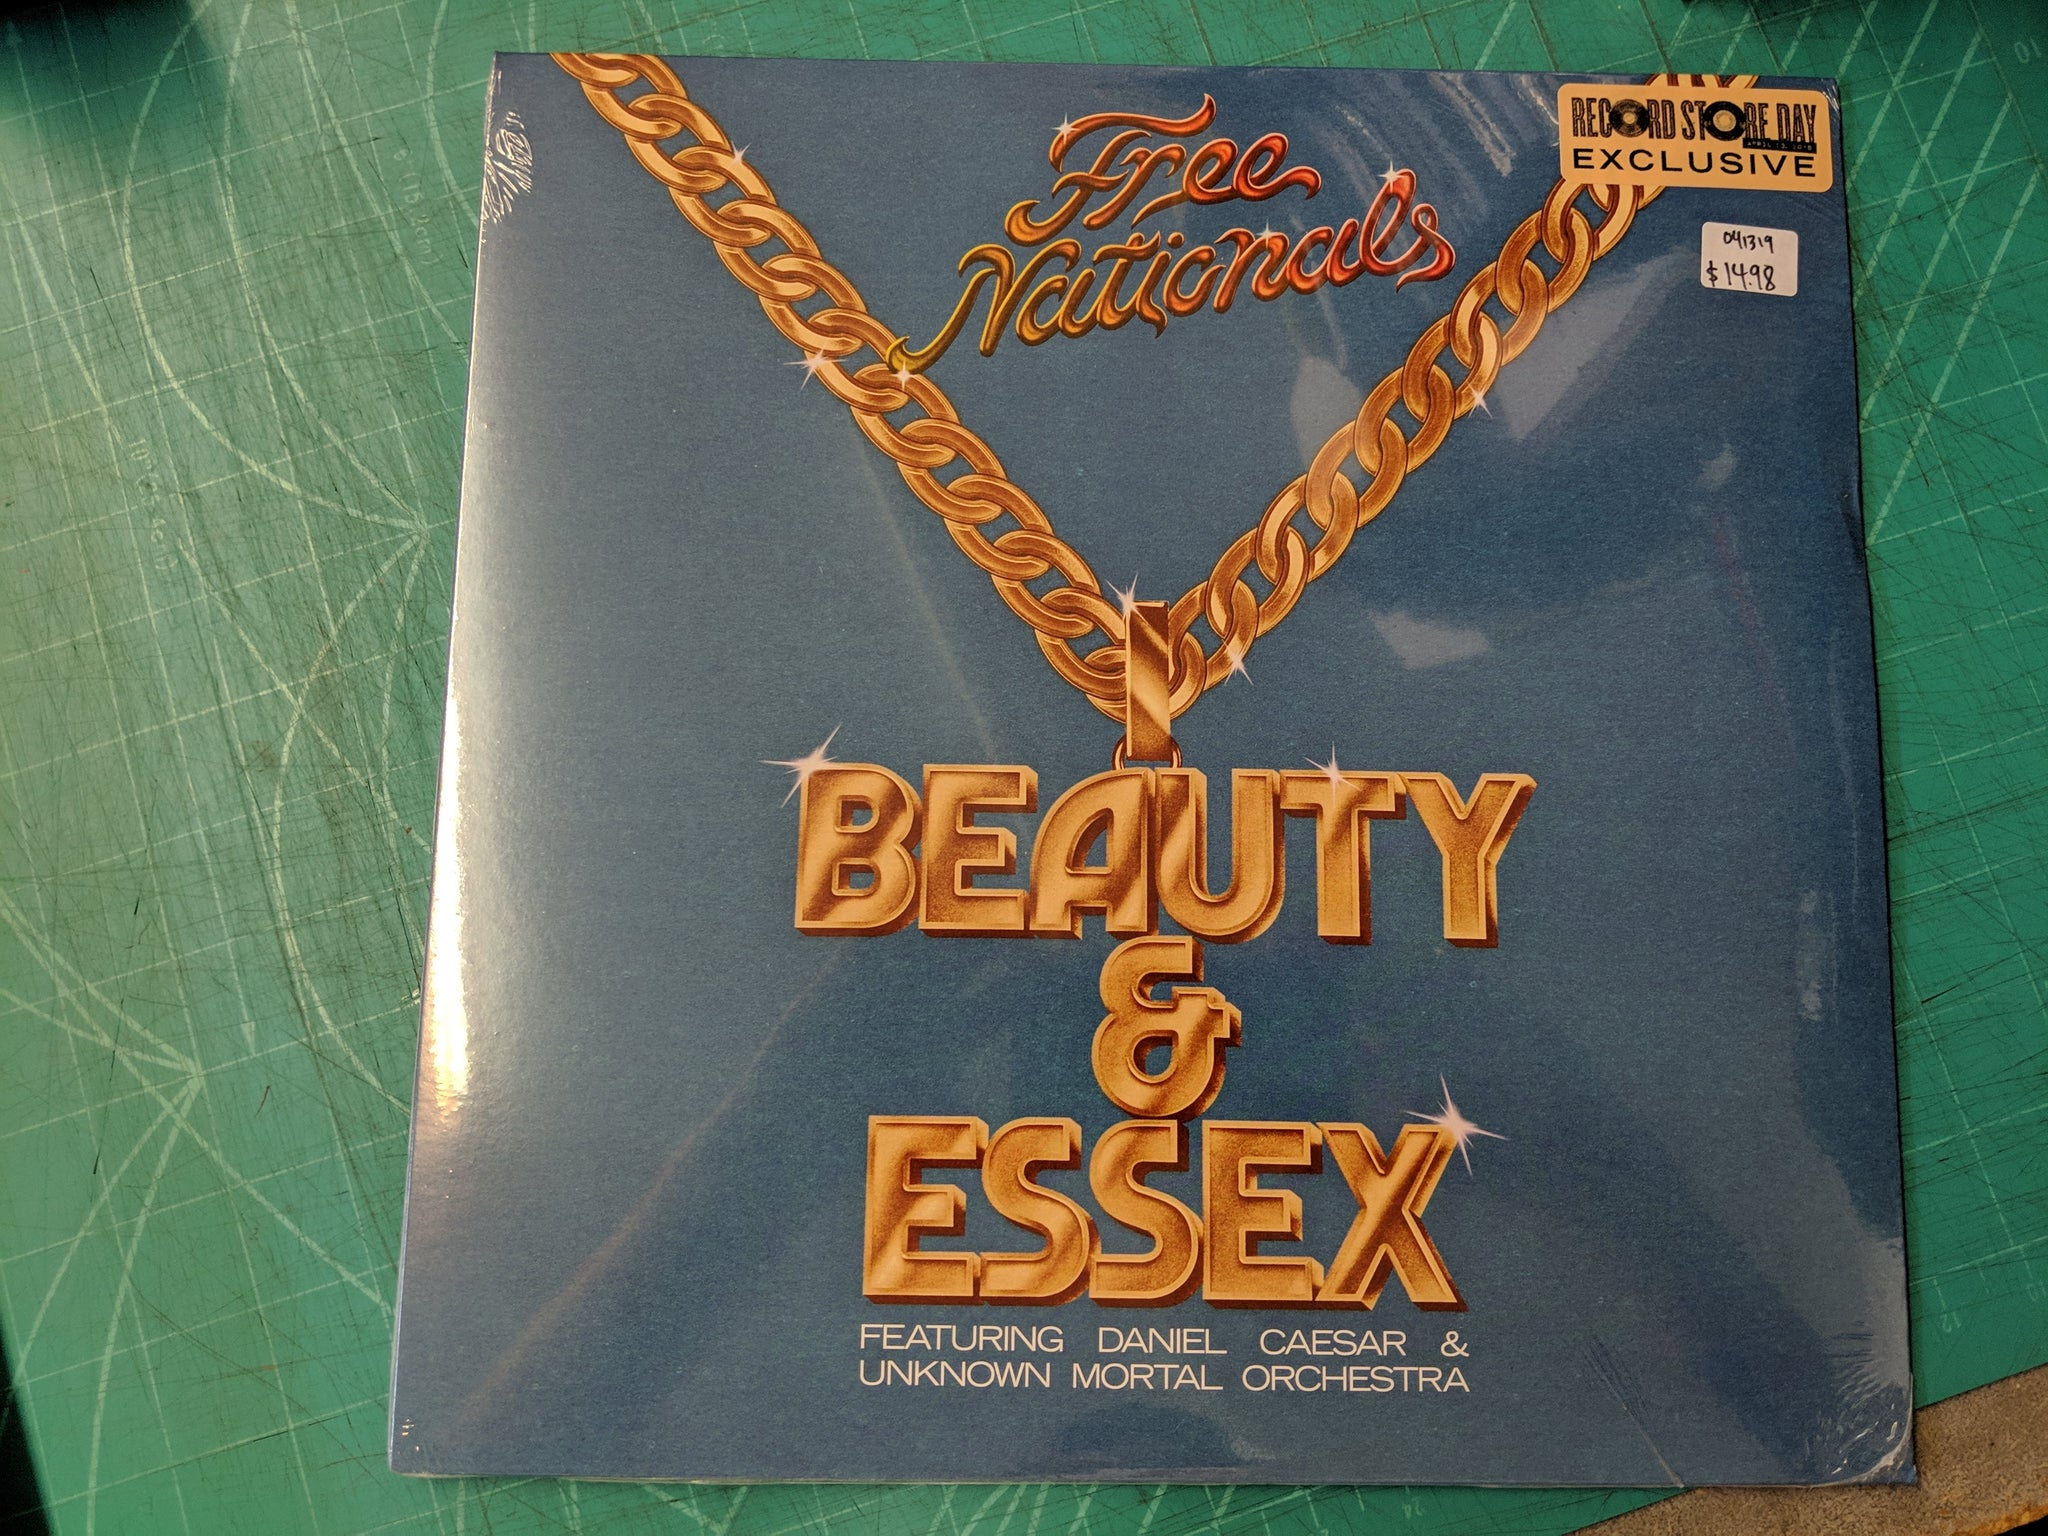 Free Nationals - Beauty & Essex LP